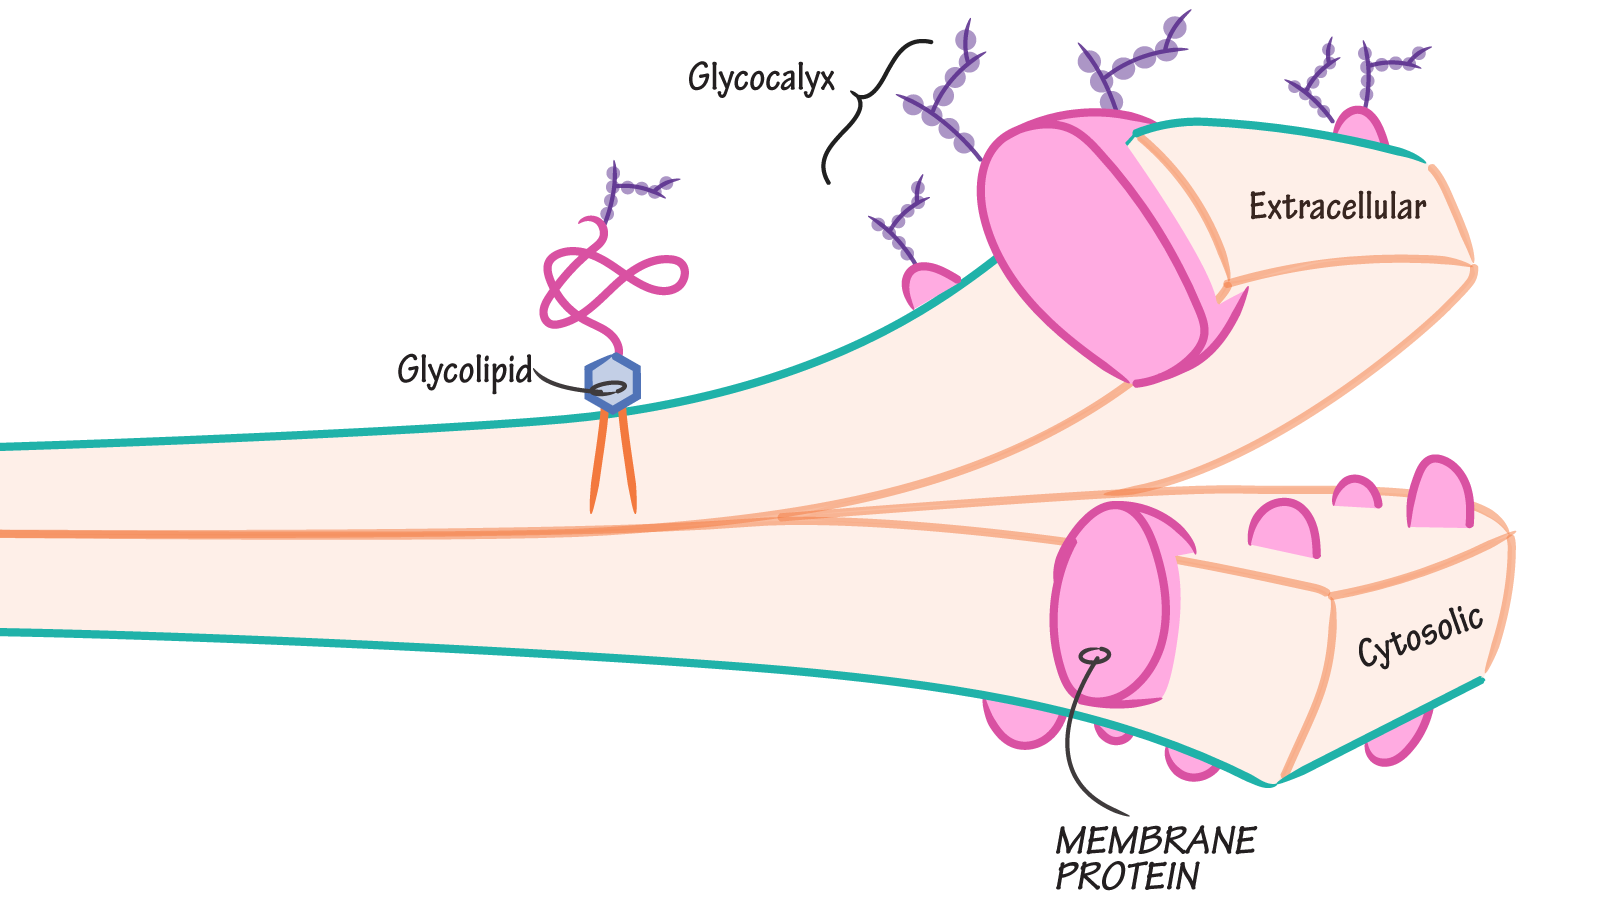 What is the glycocalyx of a cell and where is it located draw some peripheral proteins bind oligosaccharide side chains that extend into the extracellular space these side chains along with glycolipids pooptronica